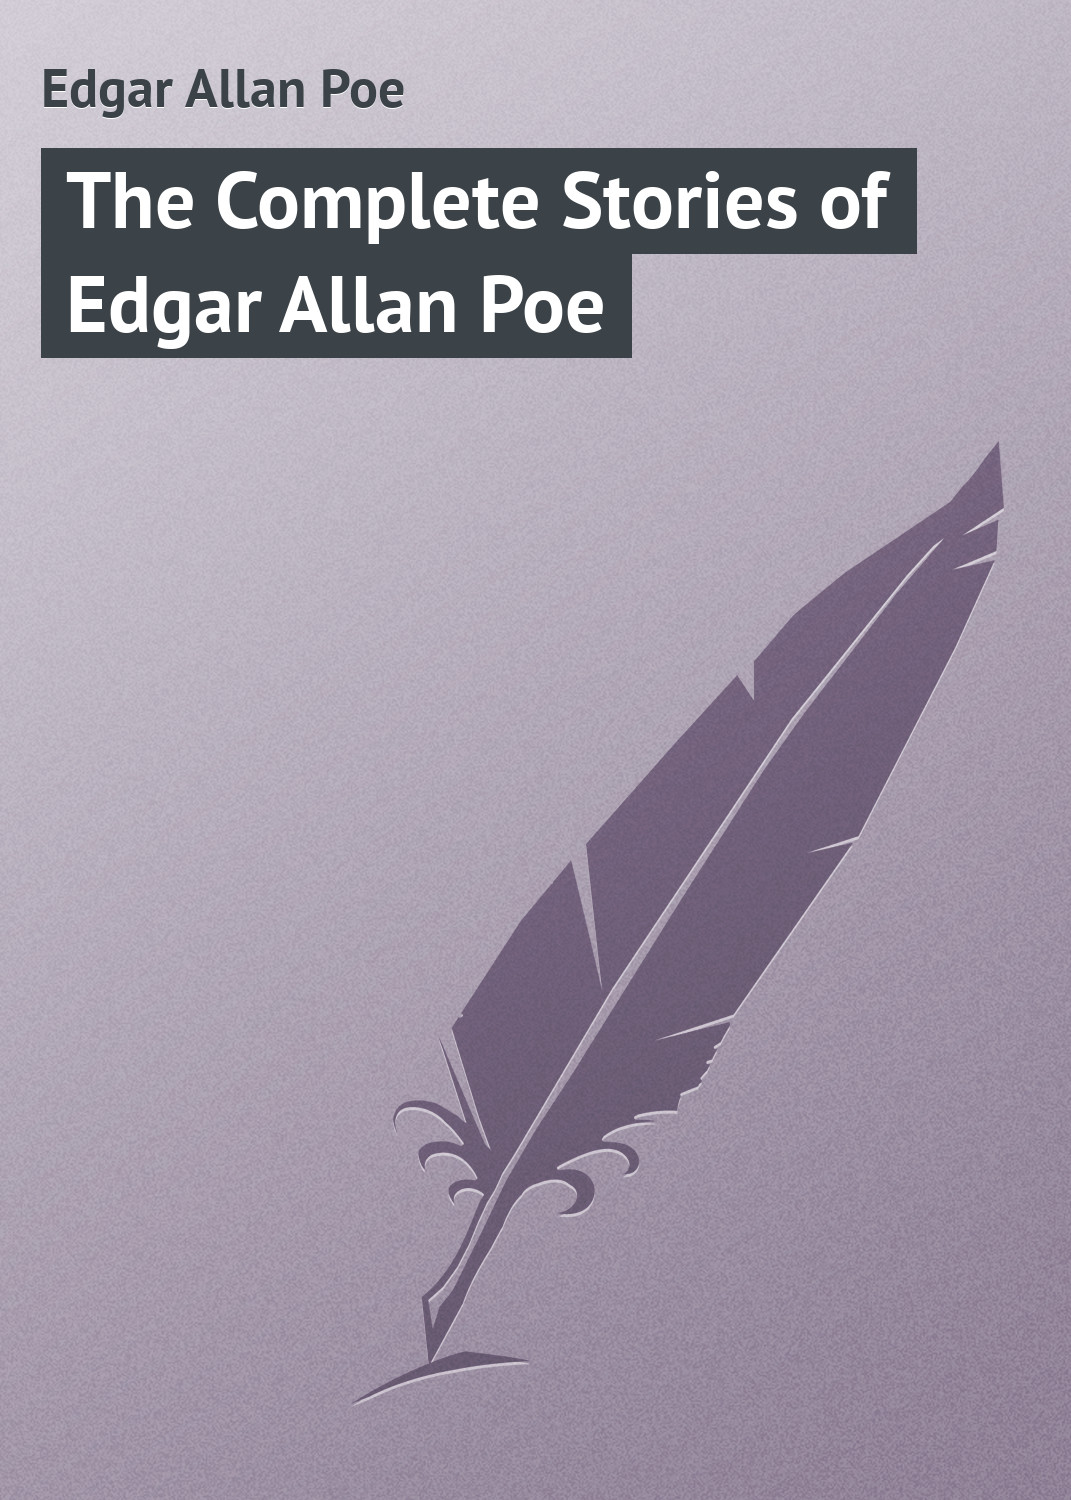 цены Эдгар Аллан По The Complete Stories of Edgar Allan Poe